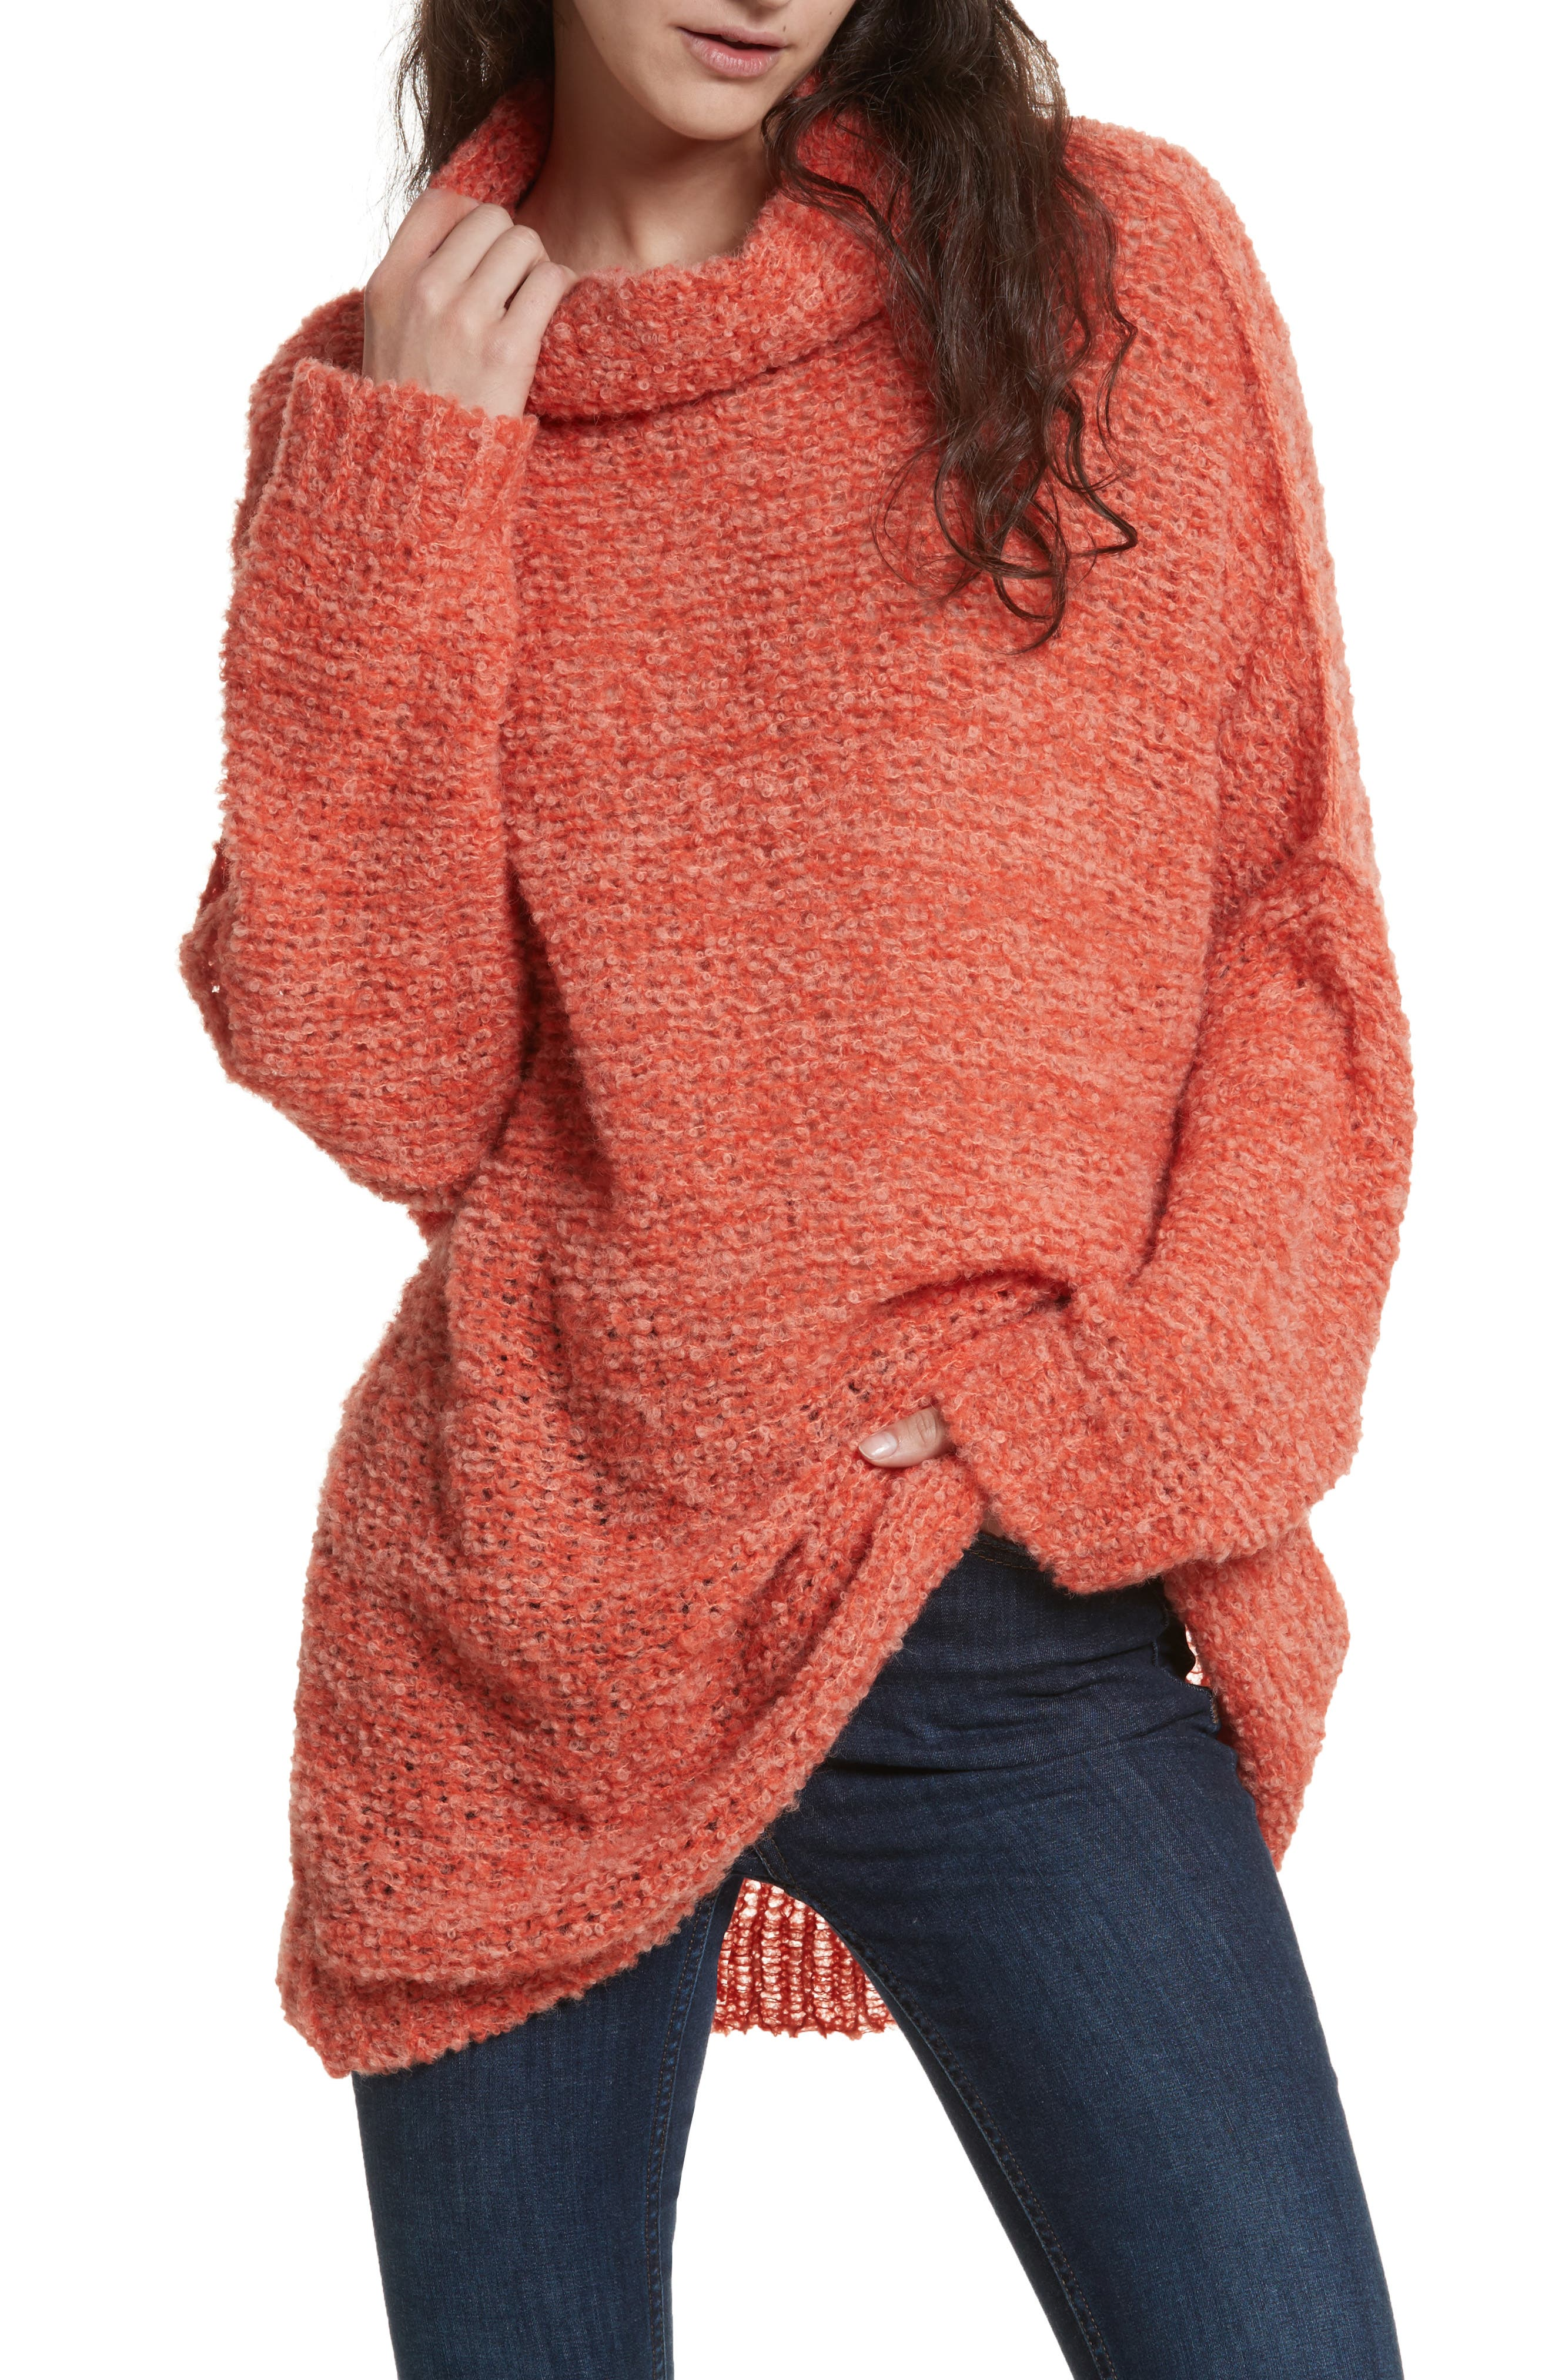 'She's All That' Knit Turtleneck Sweater,                         Main,                         color, 800